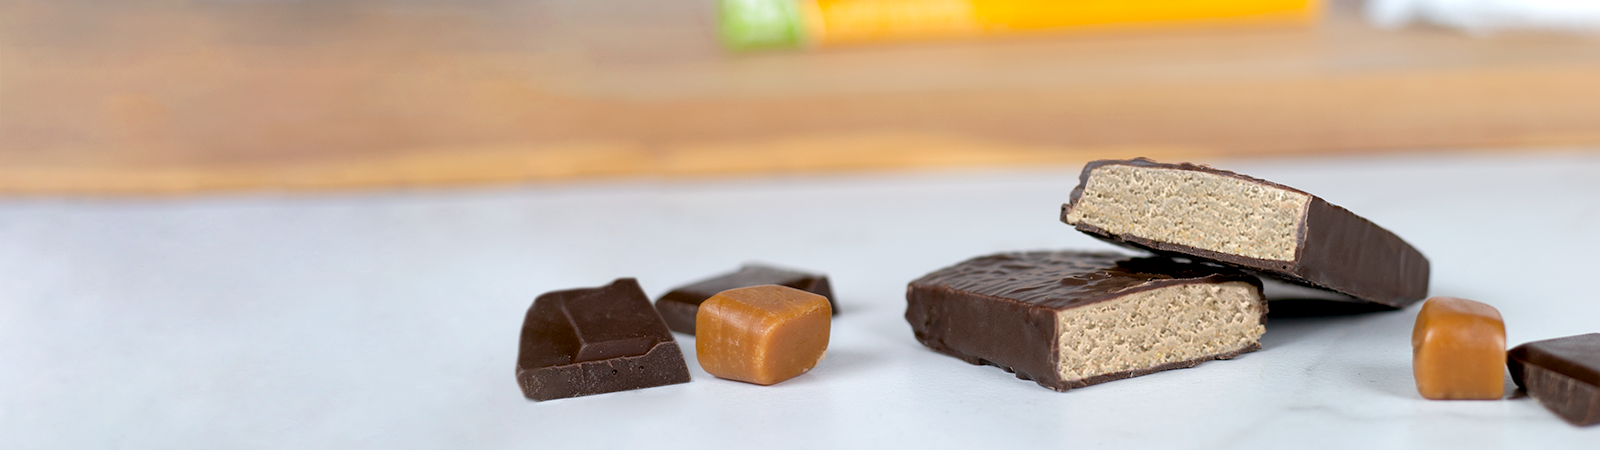 Tinymeal salted caramel launch 1600x450